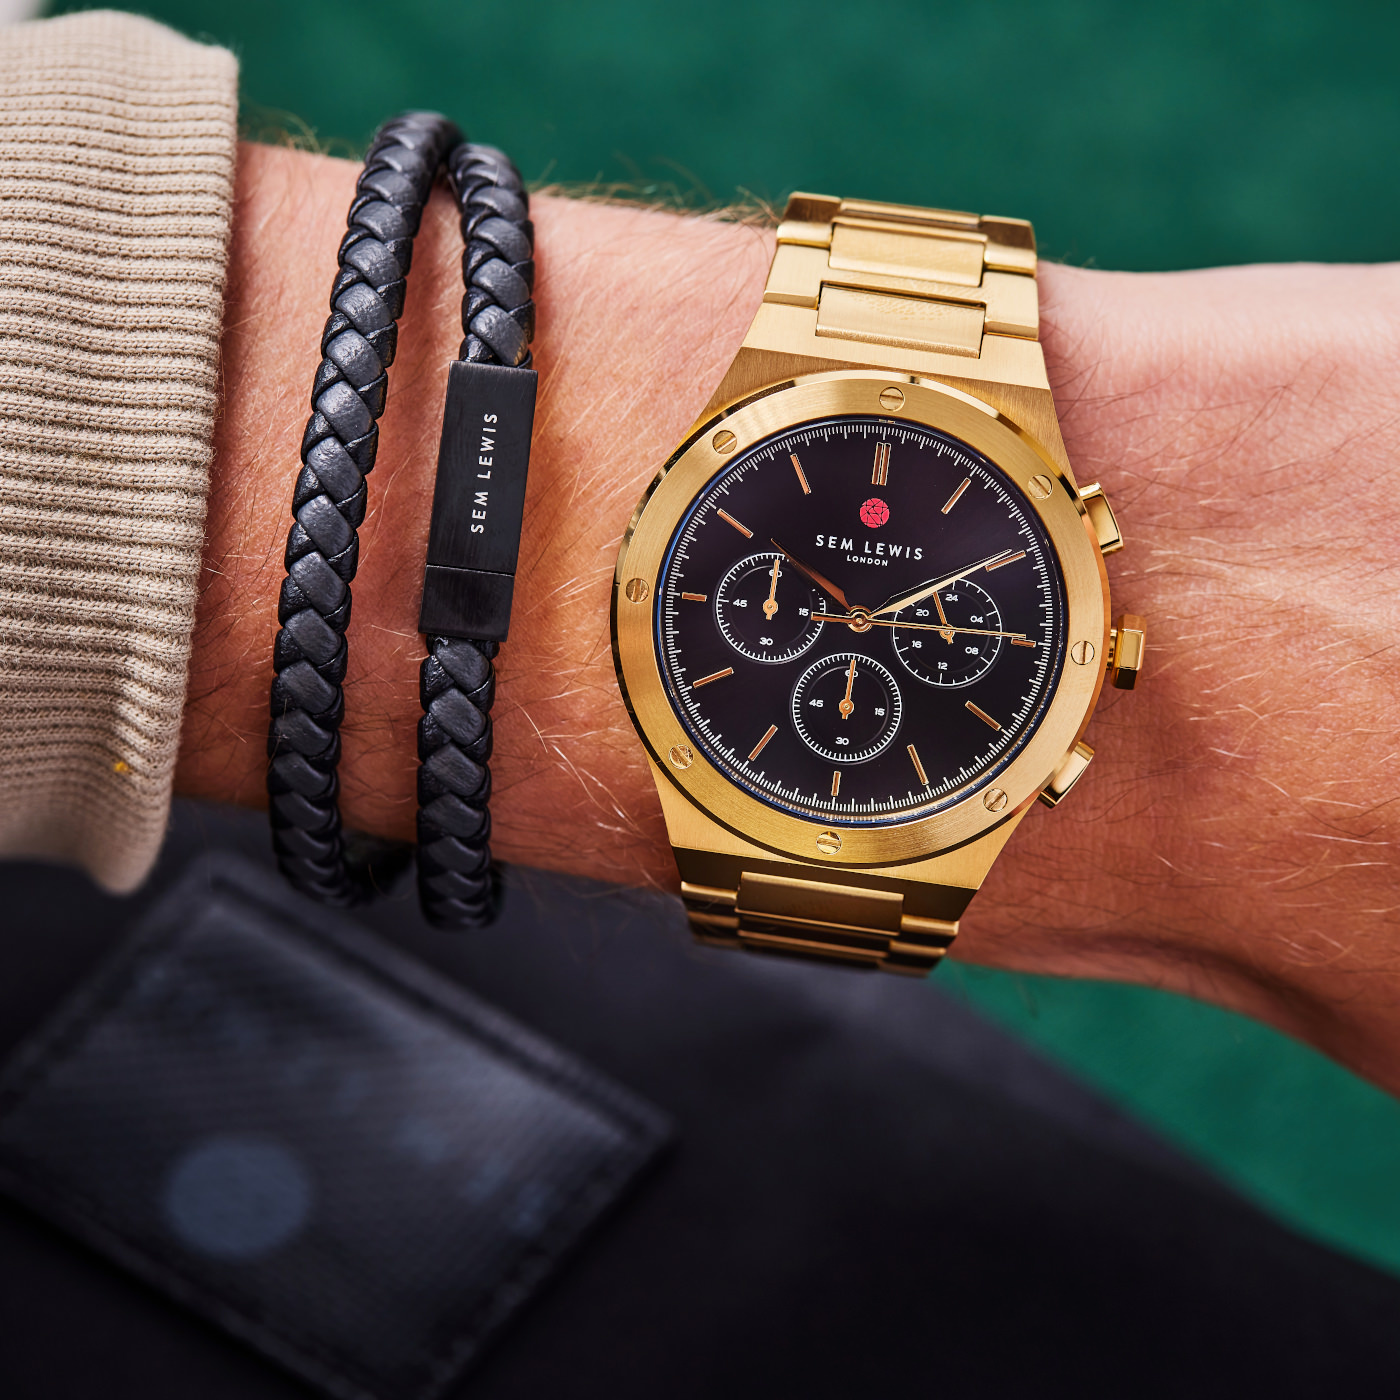 Sem Lewis Moorgate chronograph watch gold colored and black